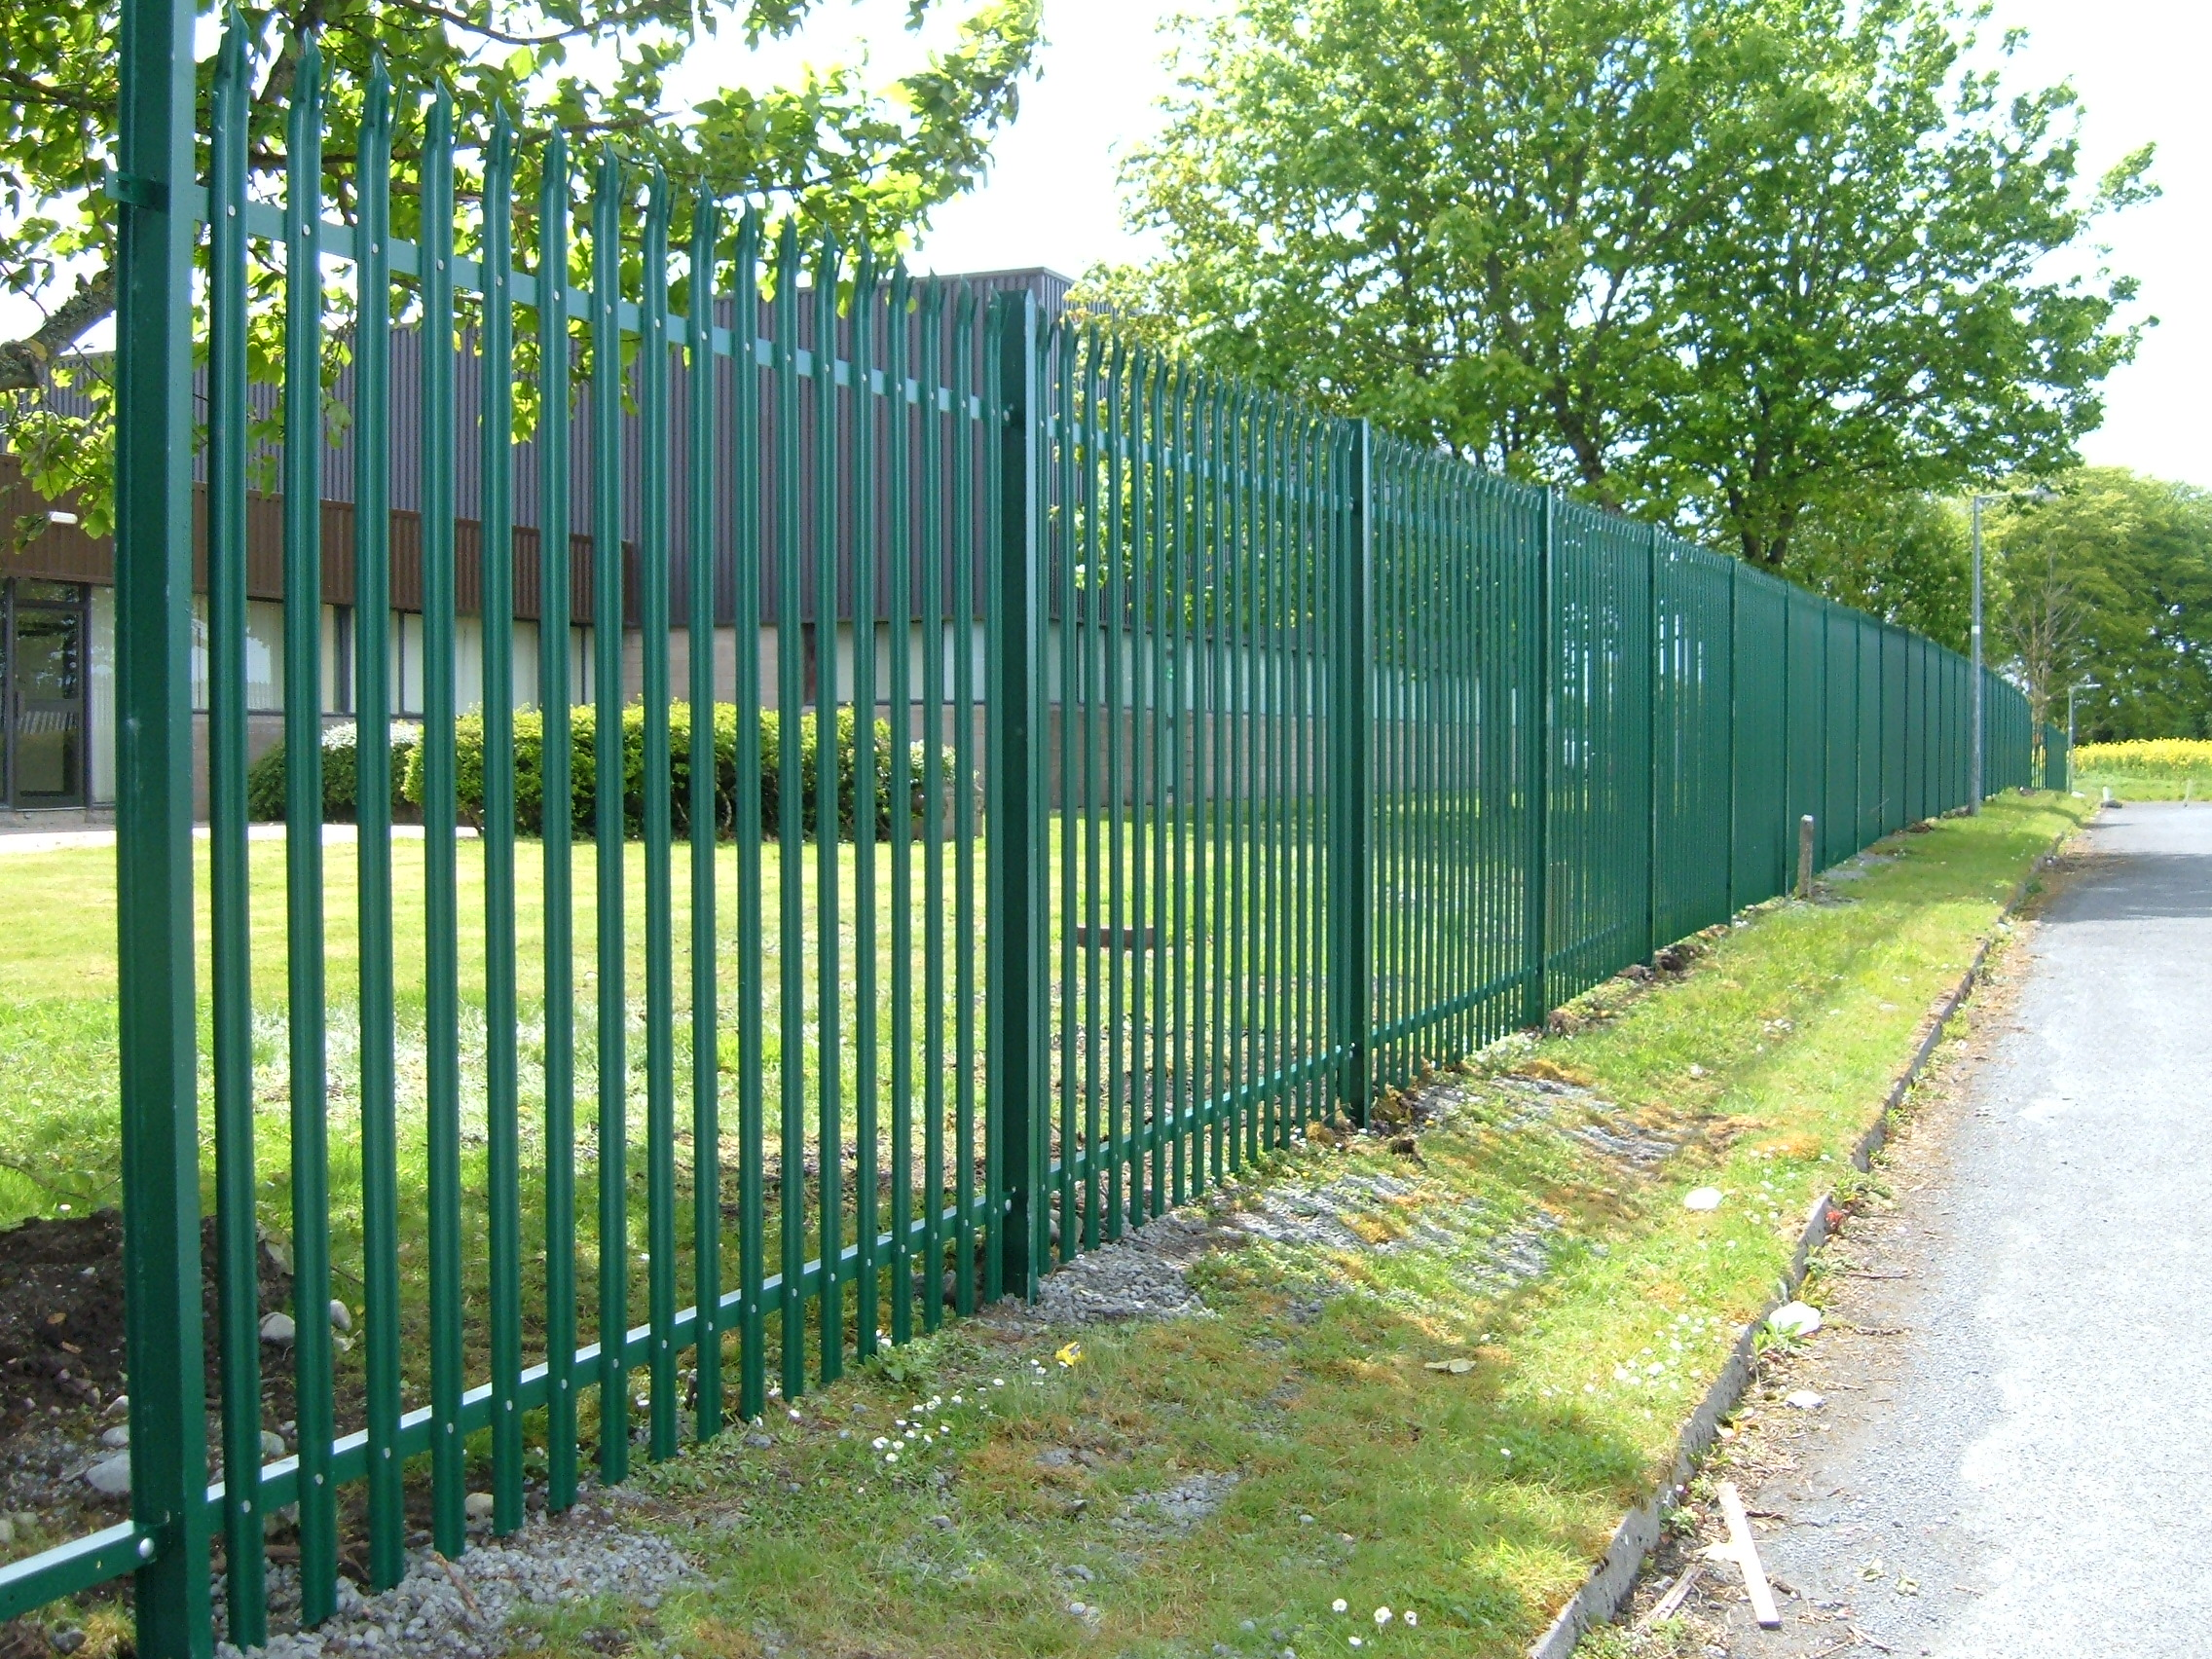 Different types of security fencing available in the market